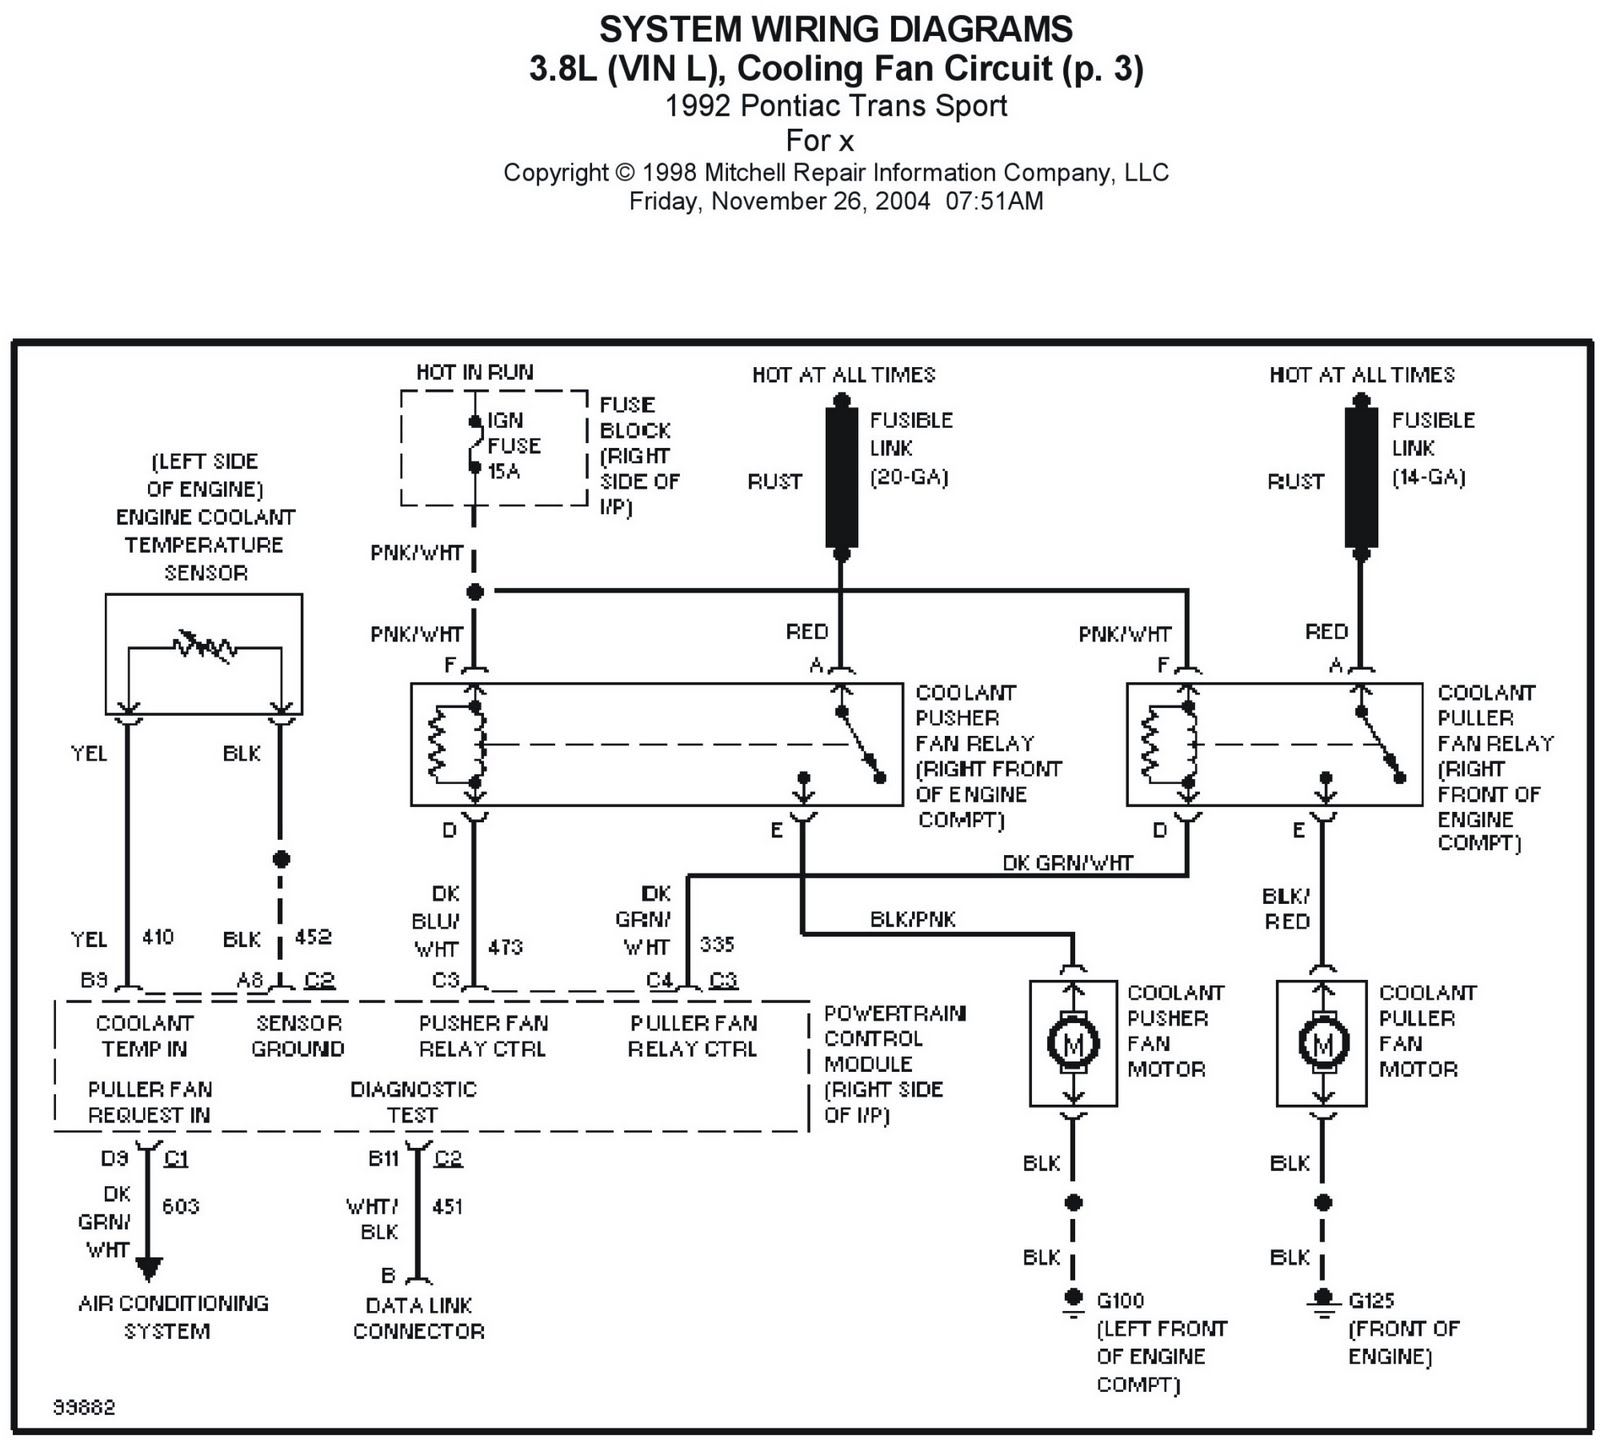 wiring diagram for 2002 trans am wiring schematic1995 trans am fuse diagram wiring library 1980 trans [ 1600 x 1443 Pixel ]